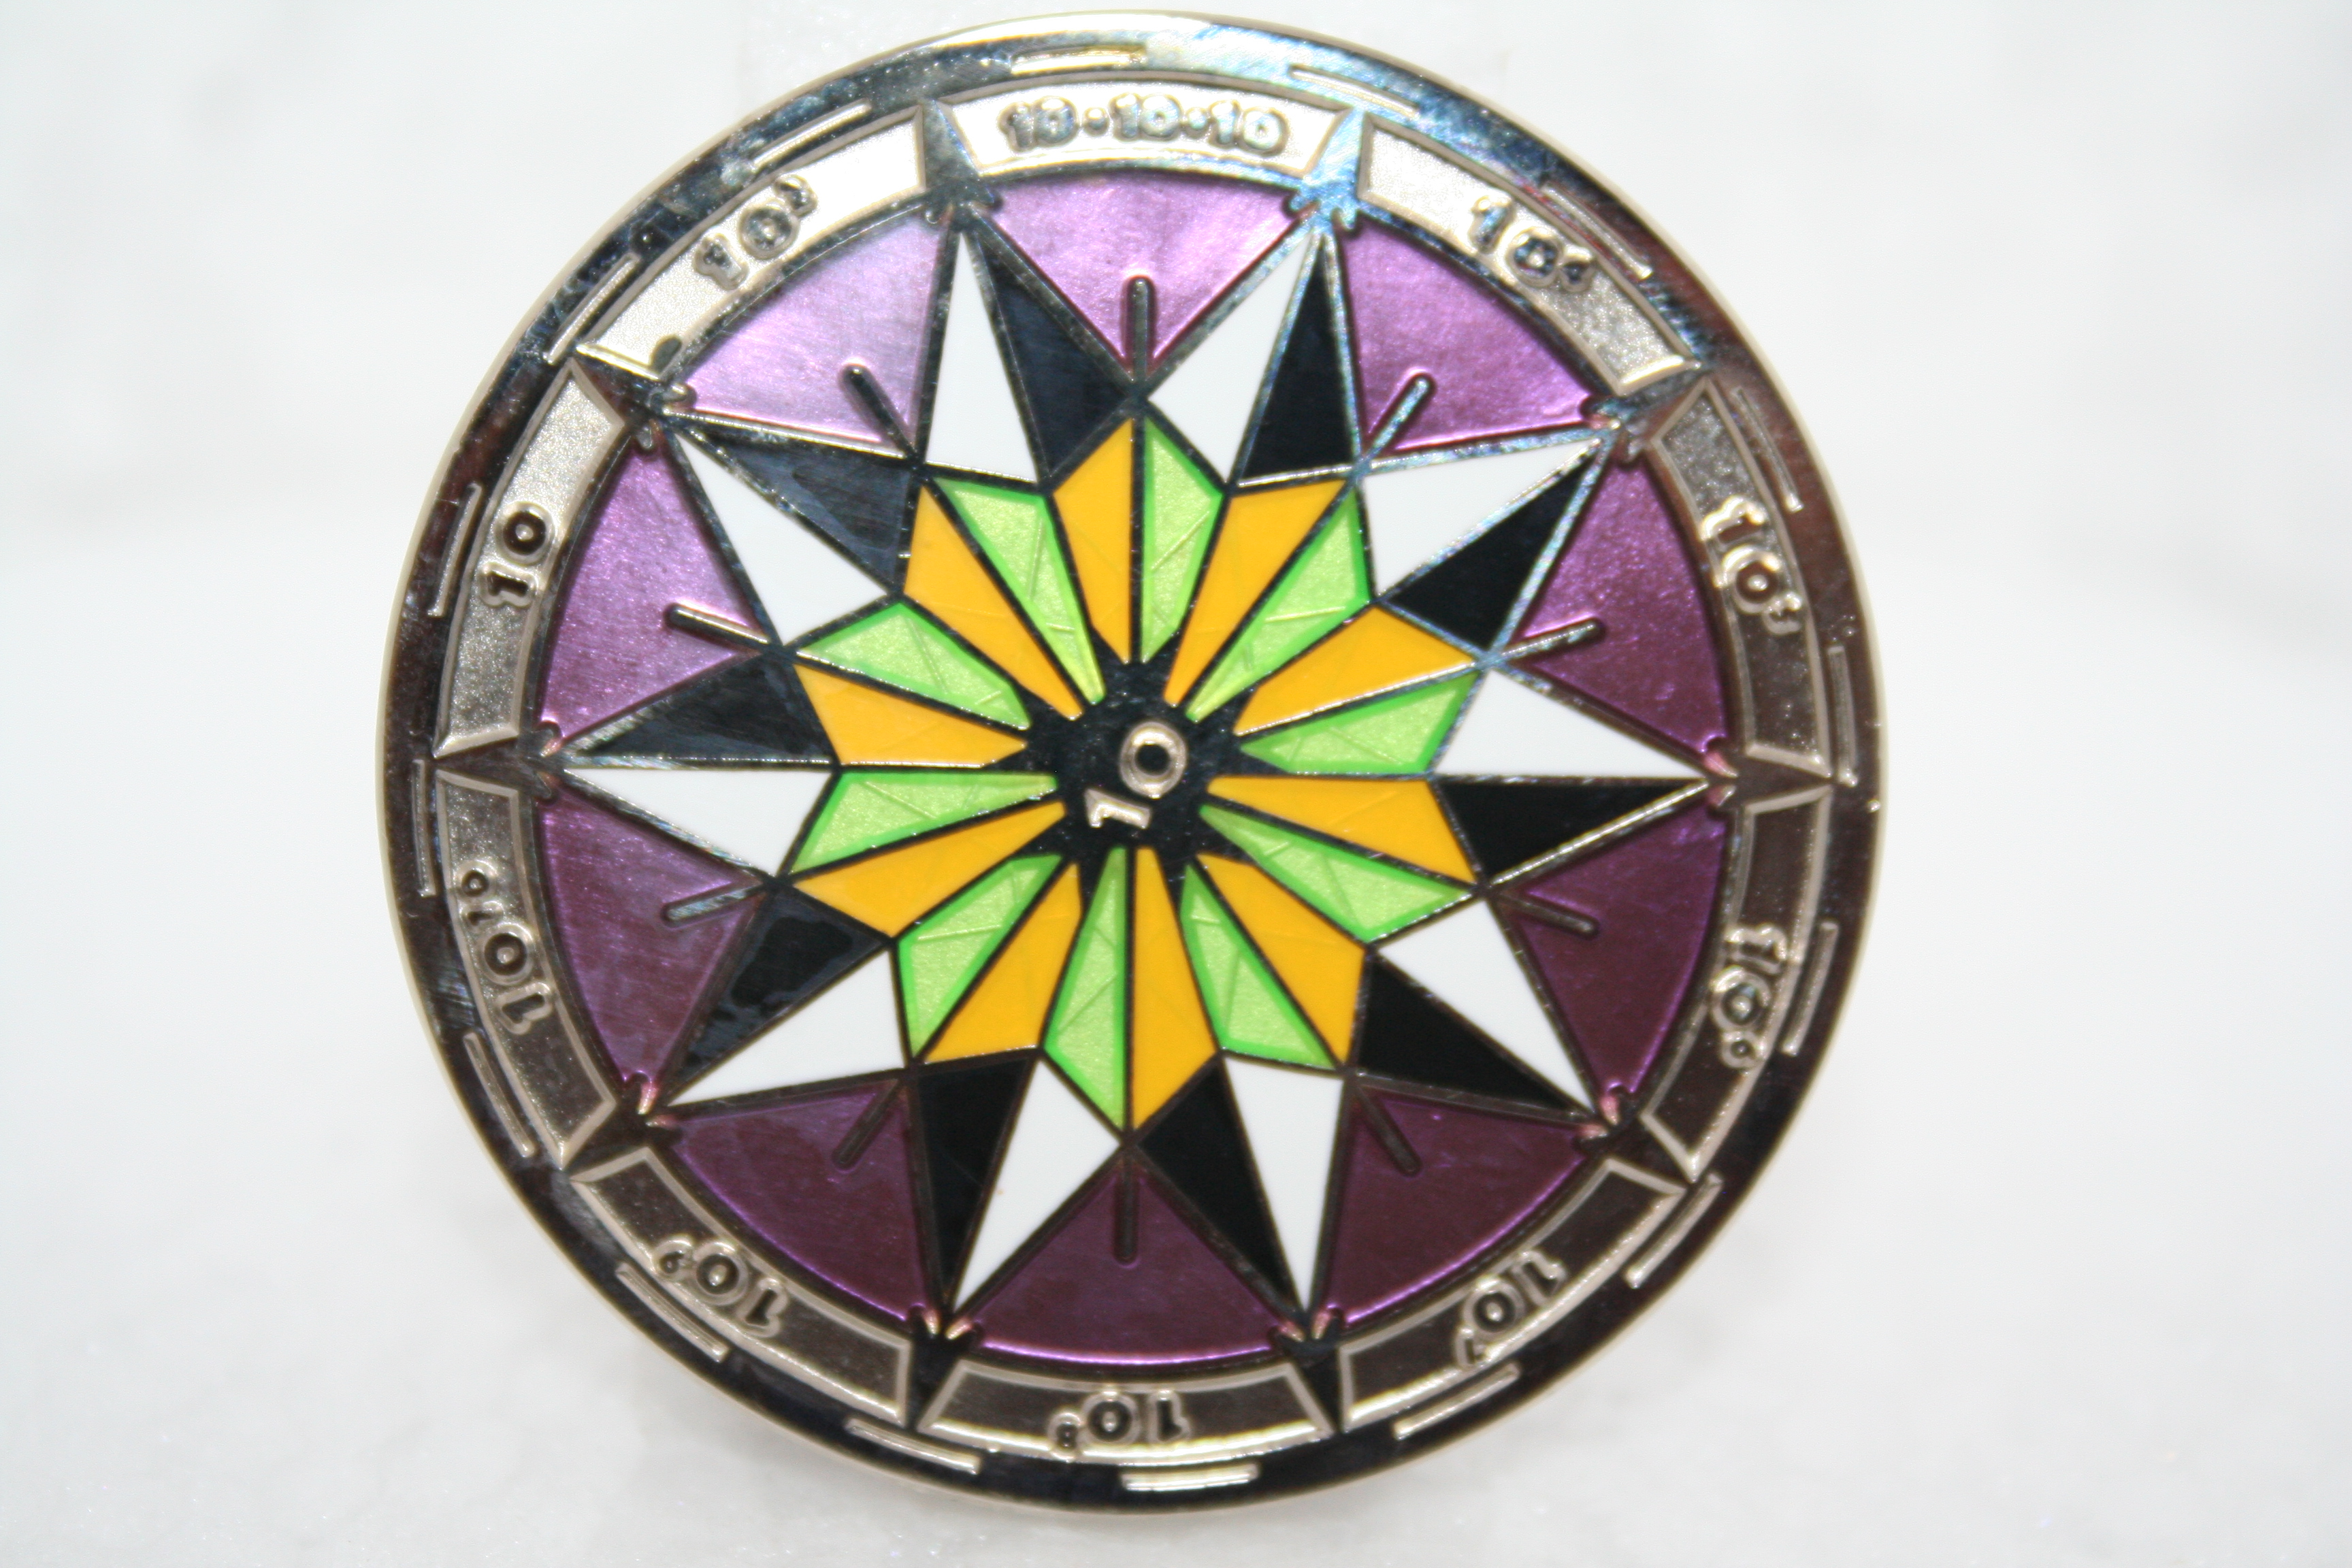 10 10 10 Powers of Ten Multi Event Geocoins - Czech republic